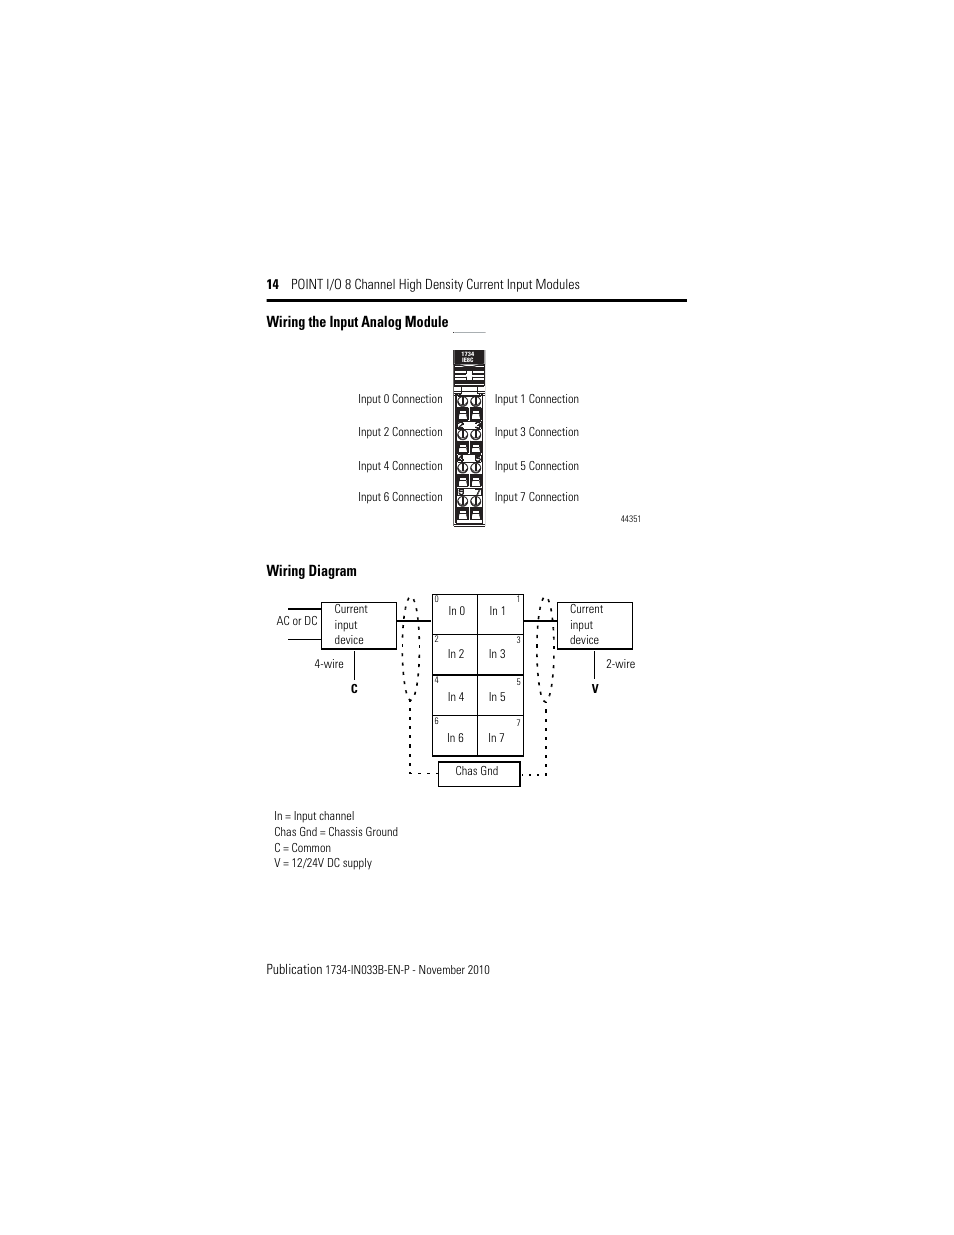 rockwell automation 1734 ie8c installation instructions page14 wiring the input analog module, wiring diagram, wiring the input 1734 ie8c wiring diagram at eliteediting.co